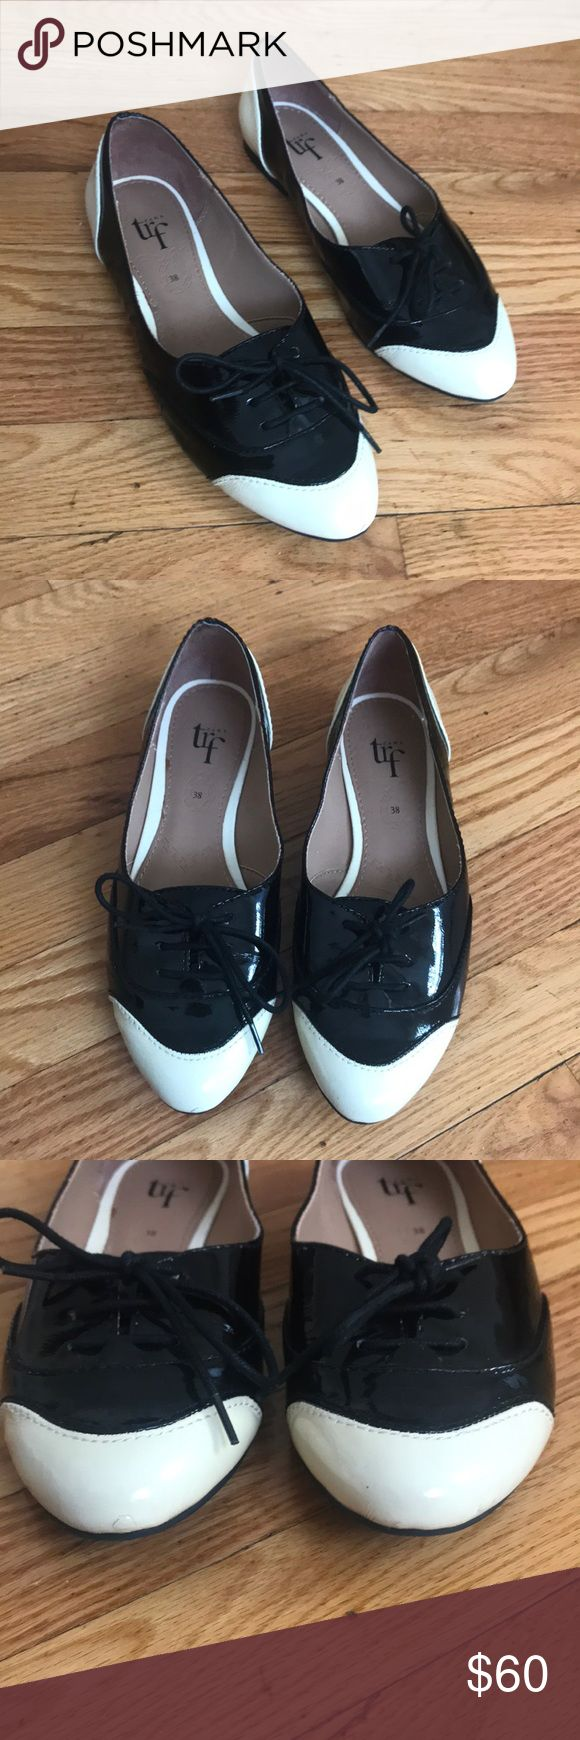 Like new Zara flats Excellent condition only worn in house once. So unique flat/Oxford hybrid. Laces function and tongue. White parts are more of an ivory cream. Zara Shoes Flats & Loafers